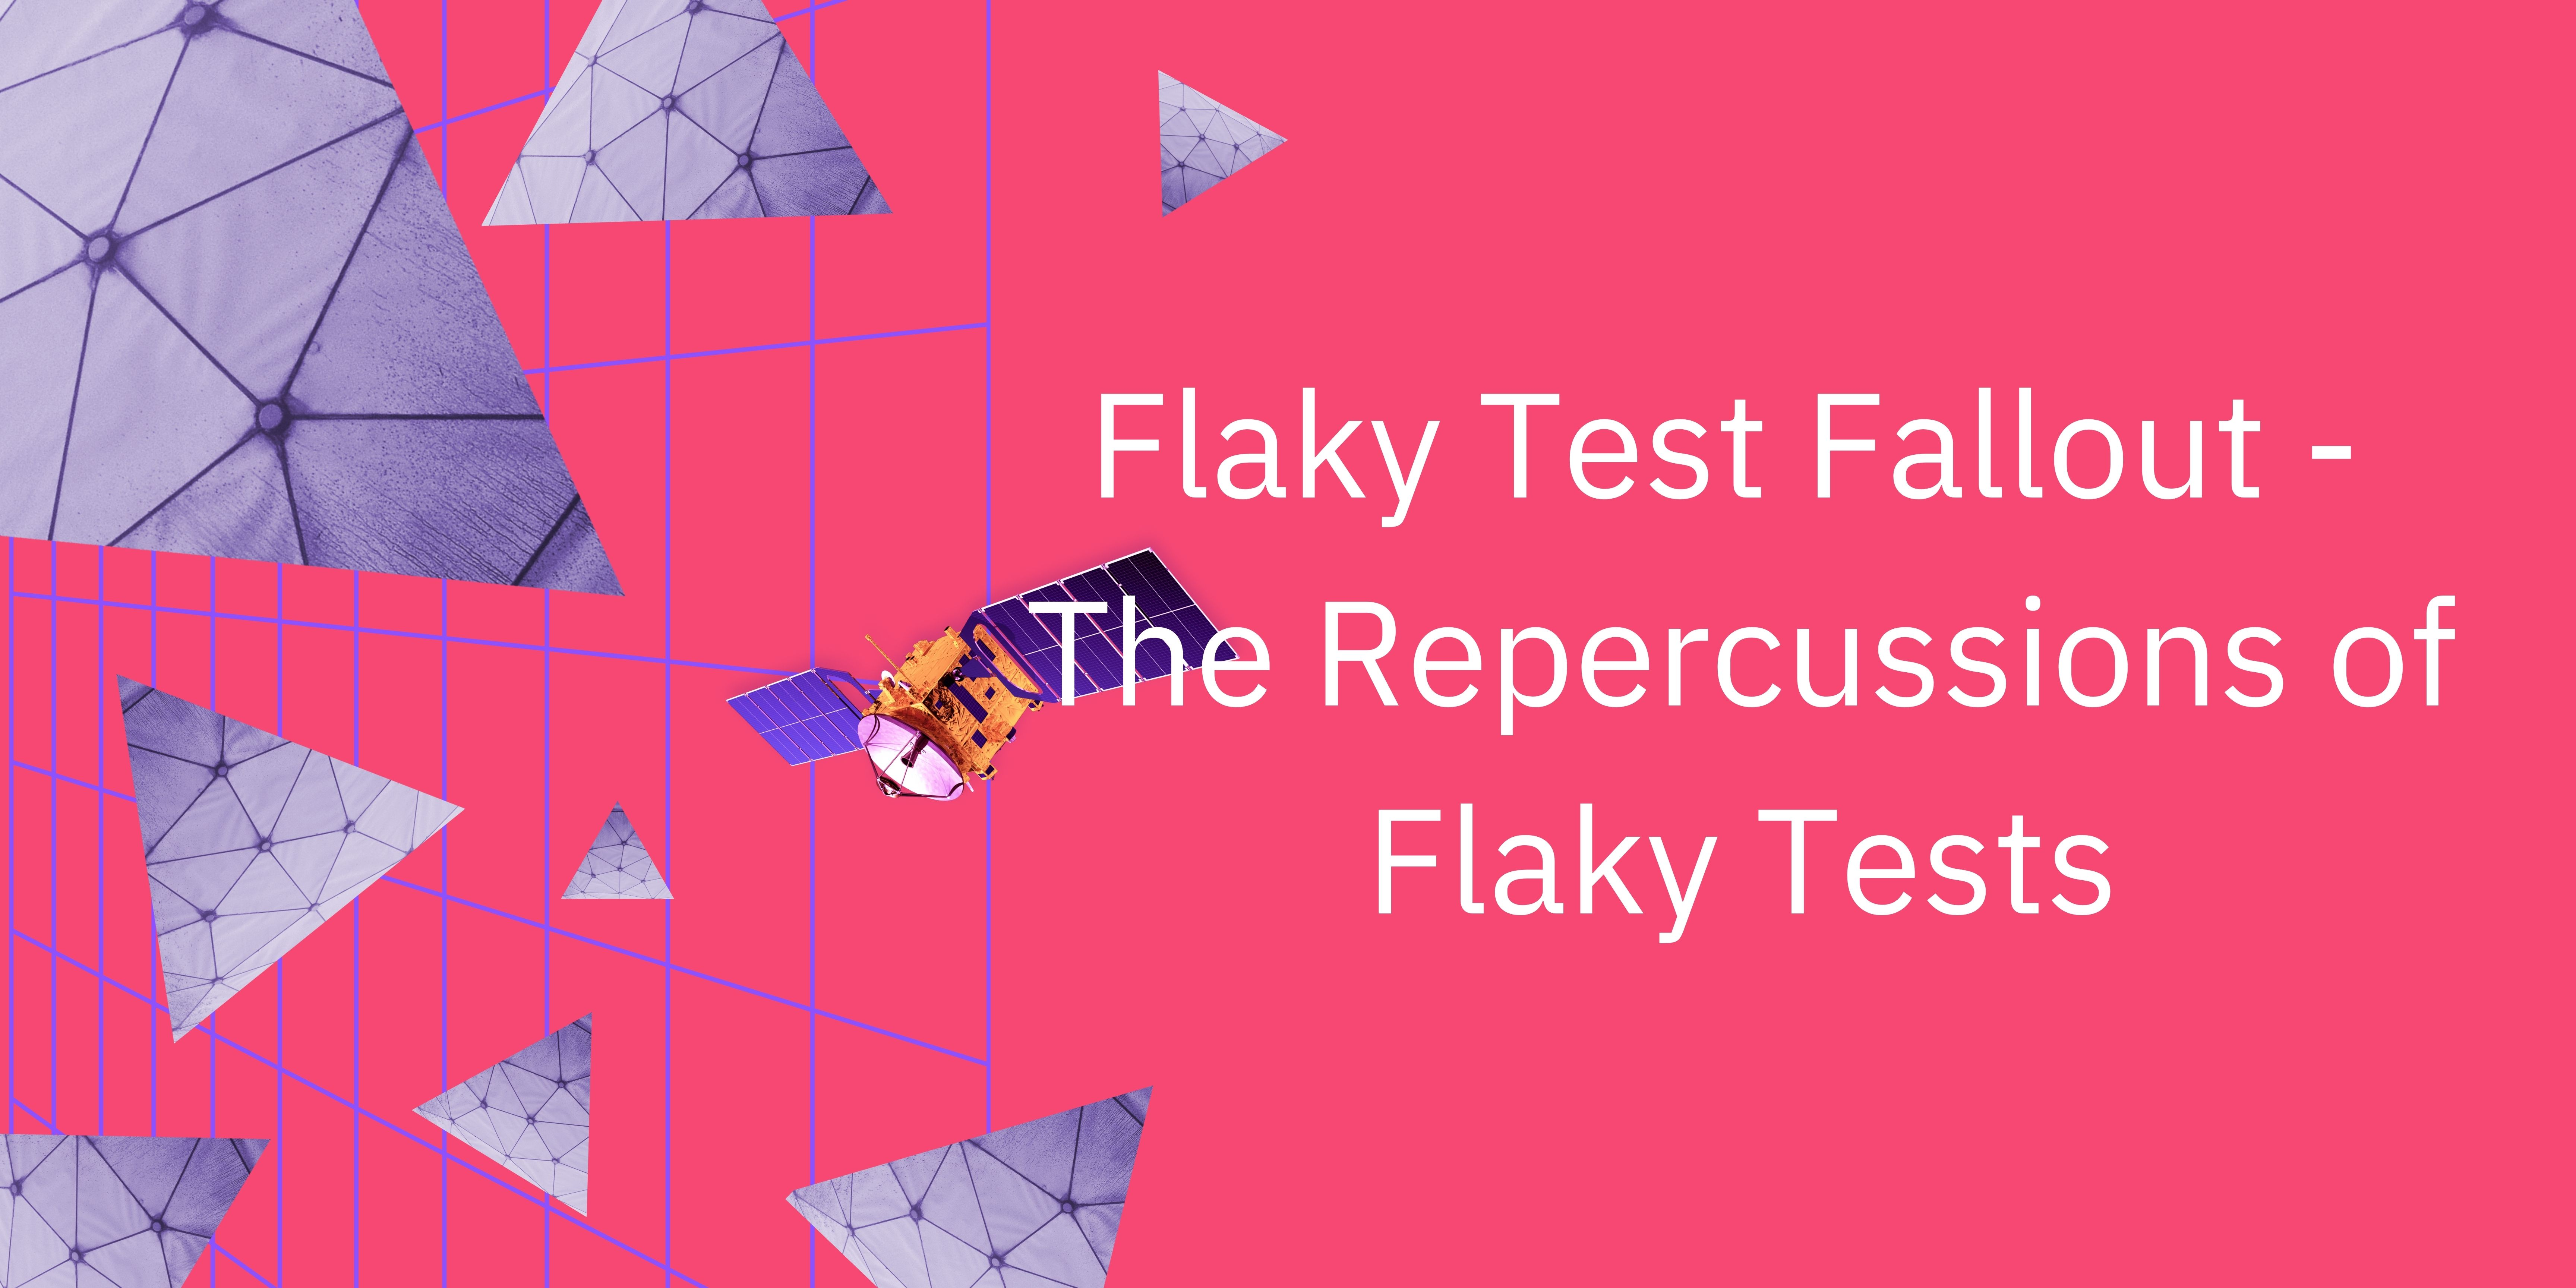 Flaky Test Fallout - The Repercussions of Flaky Tests